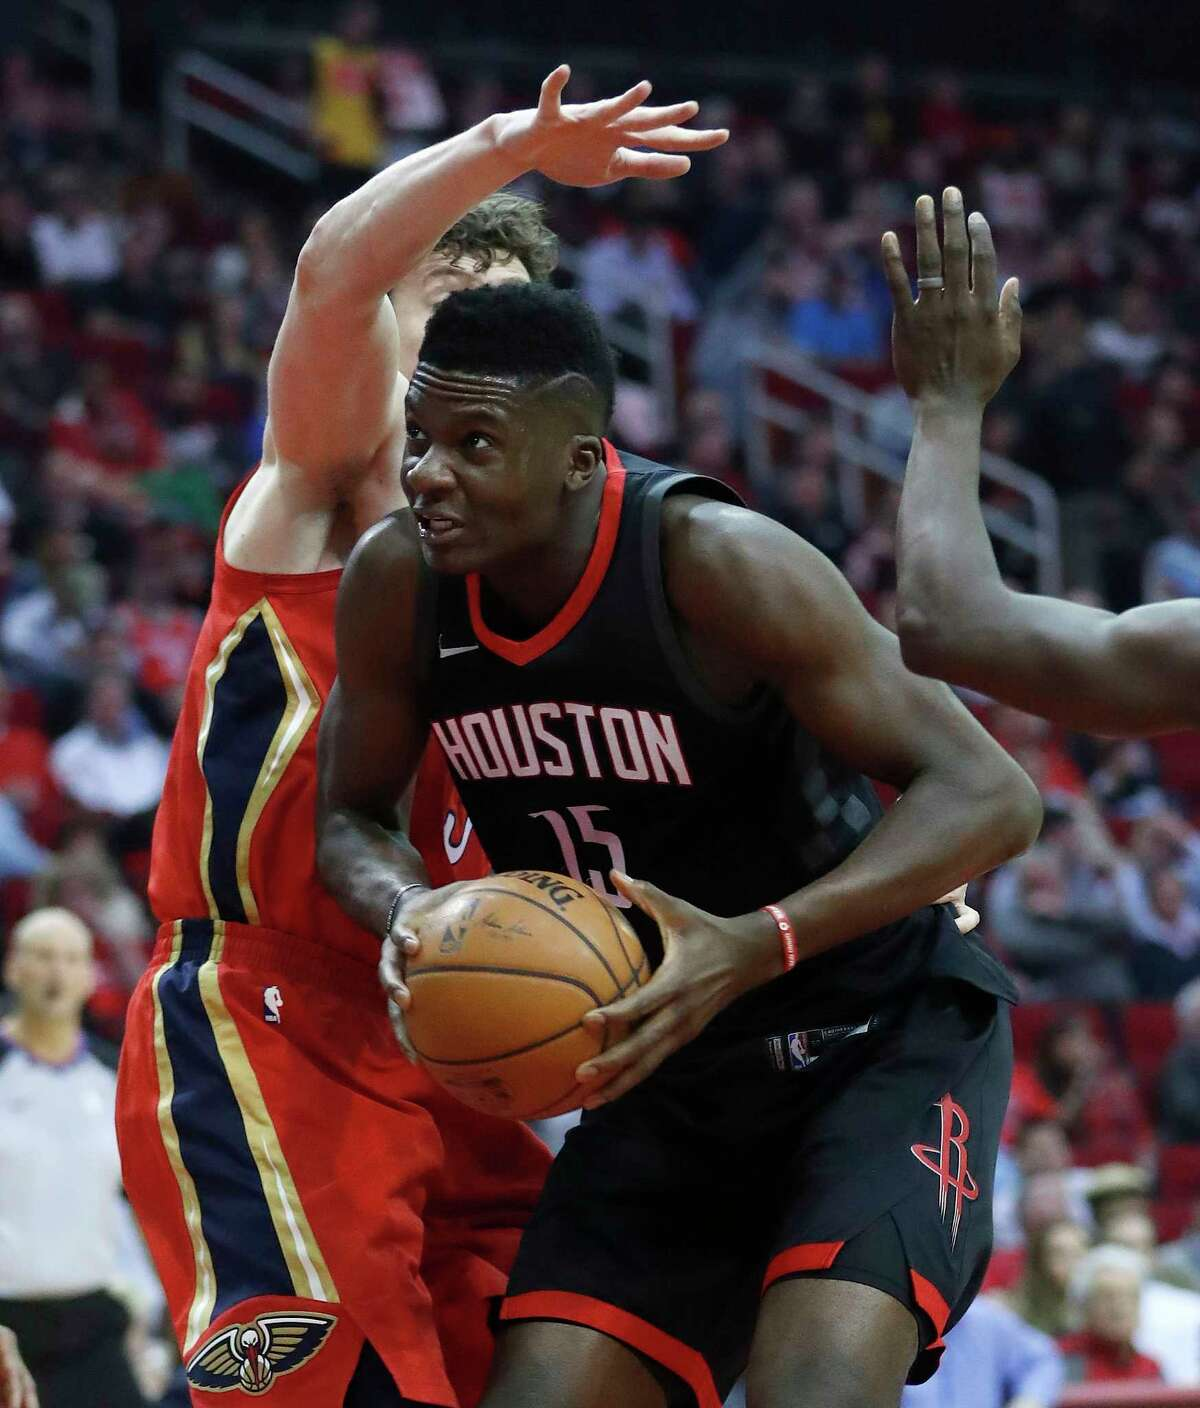 Houston Rockets center Clint Capela (15) dives under the basket during the first half of an NBA game at Toyota Center, Monday, Dec. 11, 2017, in Houston.